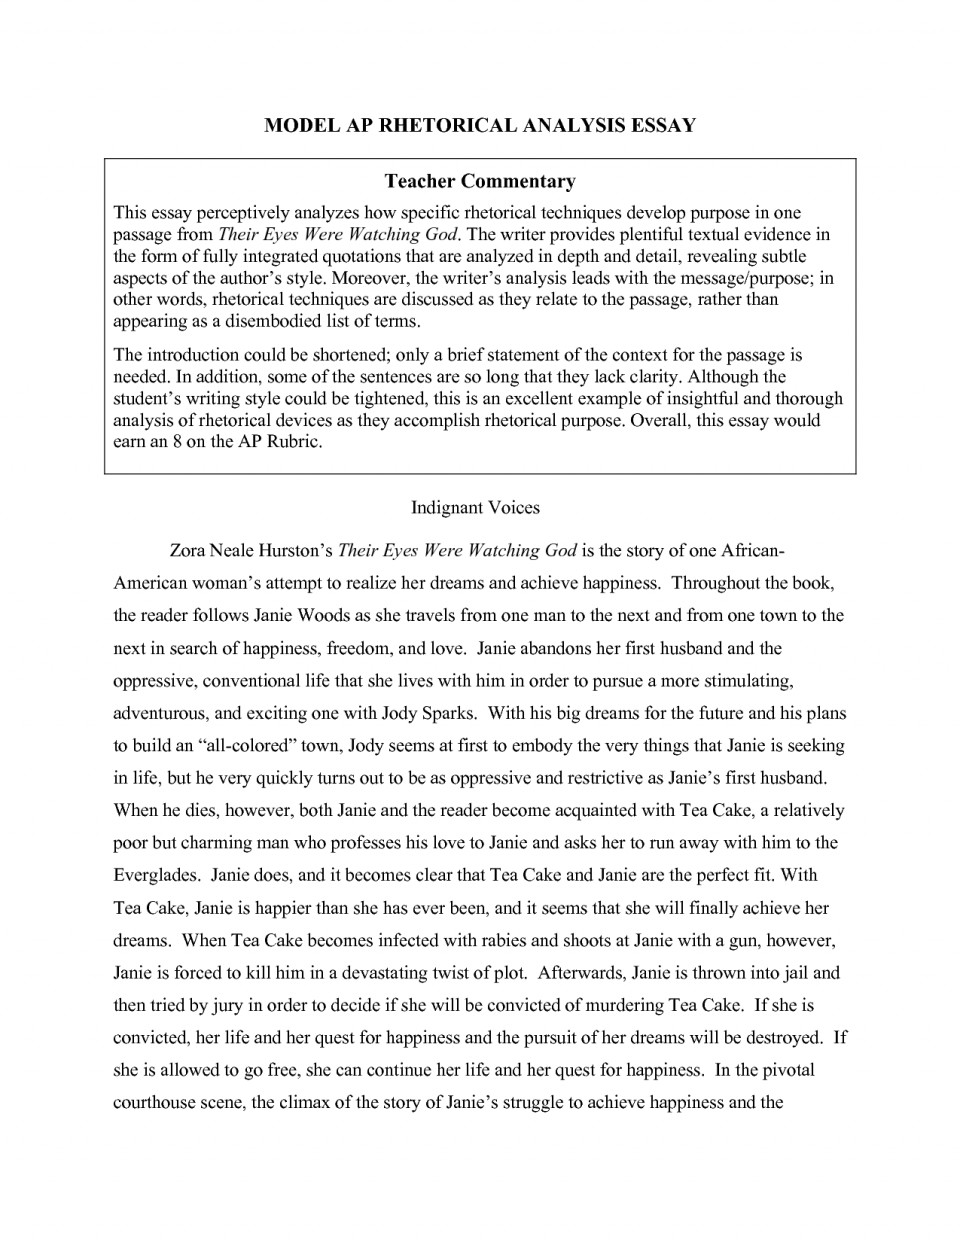 Biographical essay about shakespeare